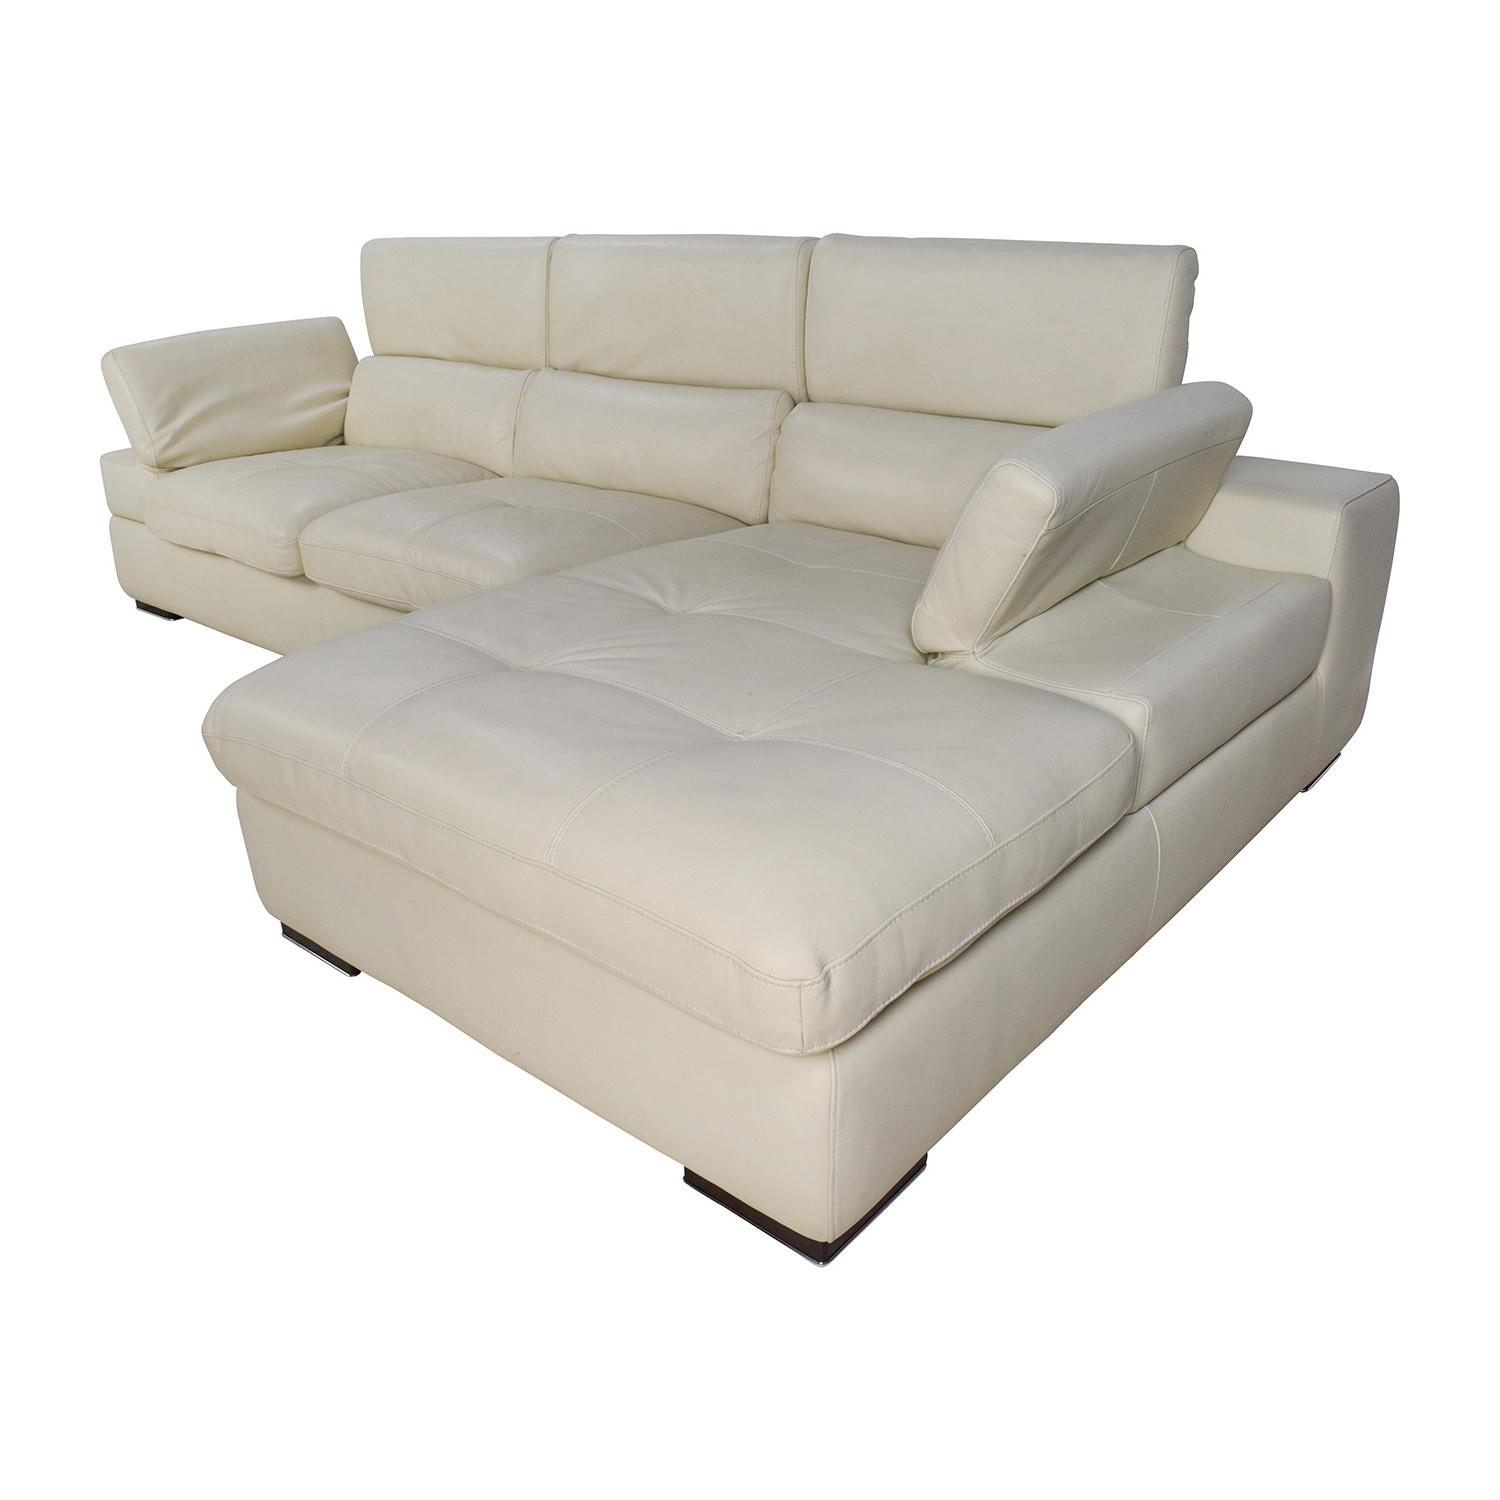 [%69% Off – L Shaped Cream Leather Sectional Sofa / Sofas For Trendy Owego L Shaped Sectional Sofas Owego L Shaped Sectional Sofas Inside Current 69% Off – L Shaped Cream Leather Sectional Sofa / Sofas Most Popular Owego L Shaped Sectional Sofas Pertaining To 69% Off – L Shaped Cream Leather Sectional Sofa / Sofas Preferred 69% Off – L Shaped Cream Leather Sectional Sofa / Sofas Pertaining To Owego L Shaped Sectional Sofas%] (View 15 of 25)